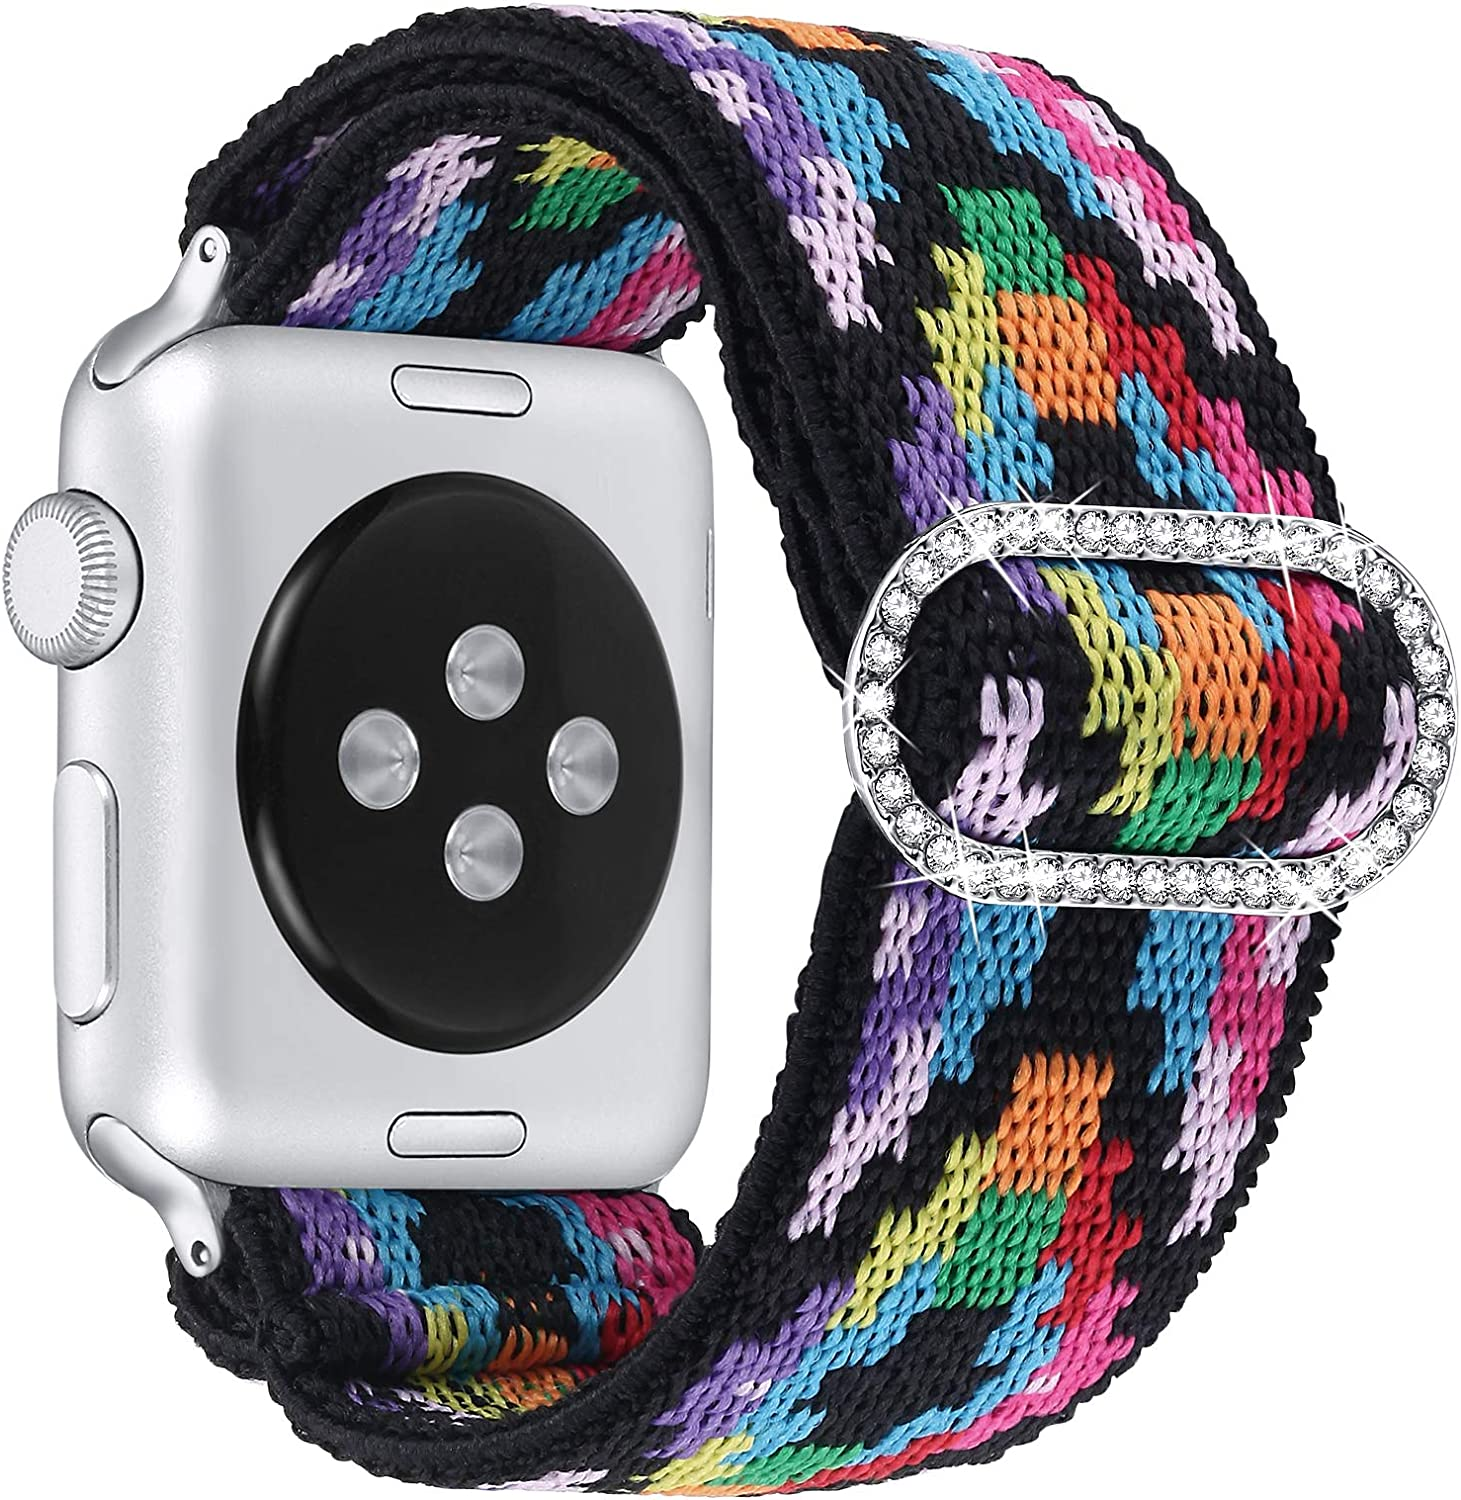 fastgo Compatible with Elastic Apple Watch Band Adjustable 38mm/40mm/42mm/44mm, Stretchy Bracelet Women Strap Replacement Wristband for IWatch SE, Series 6/5/4/3/2/1